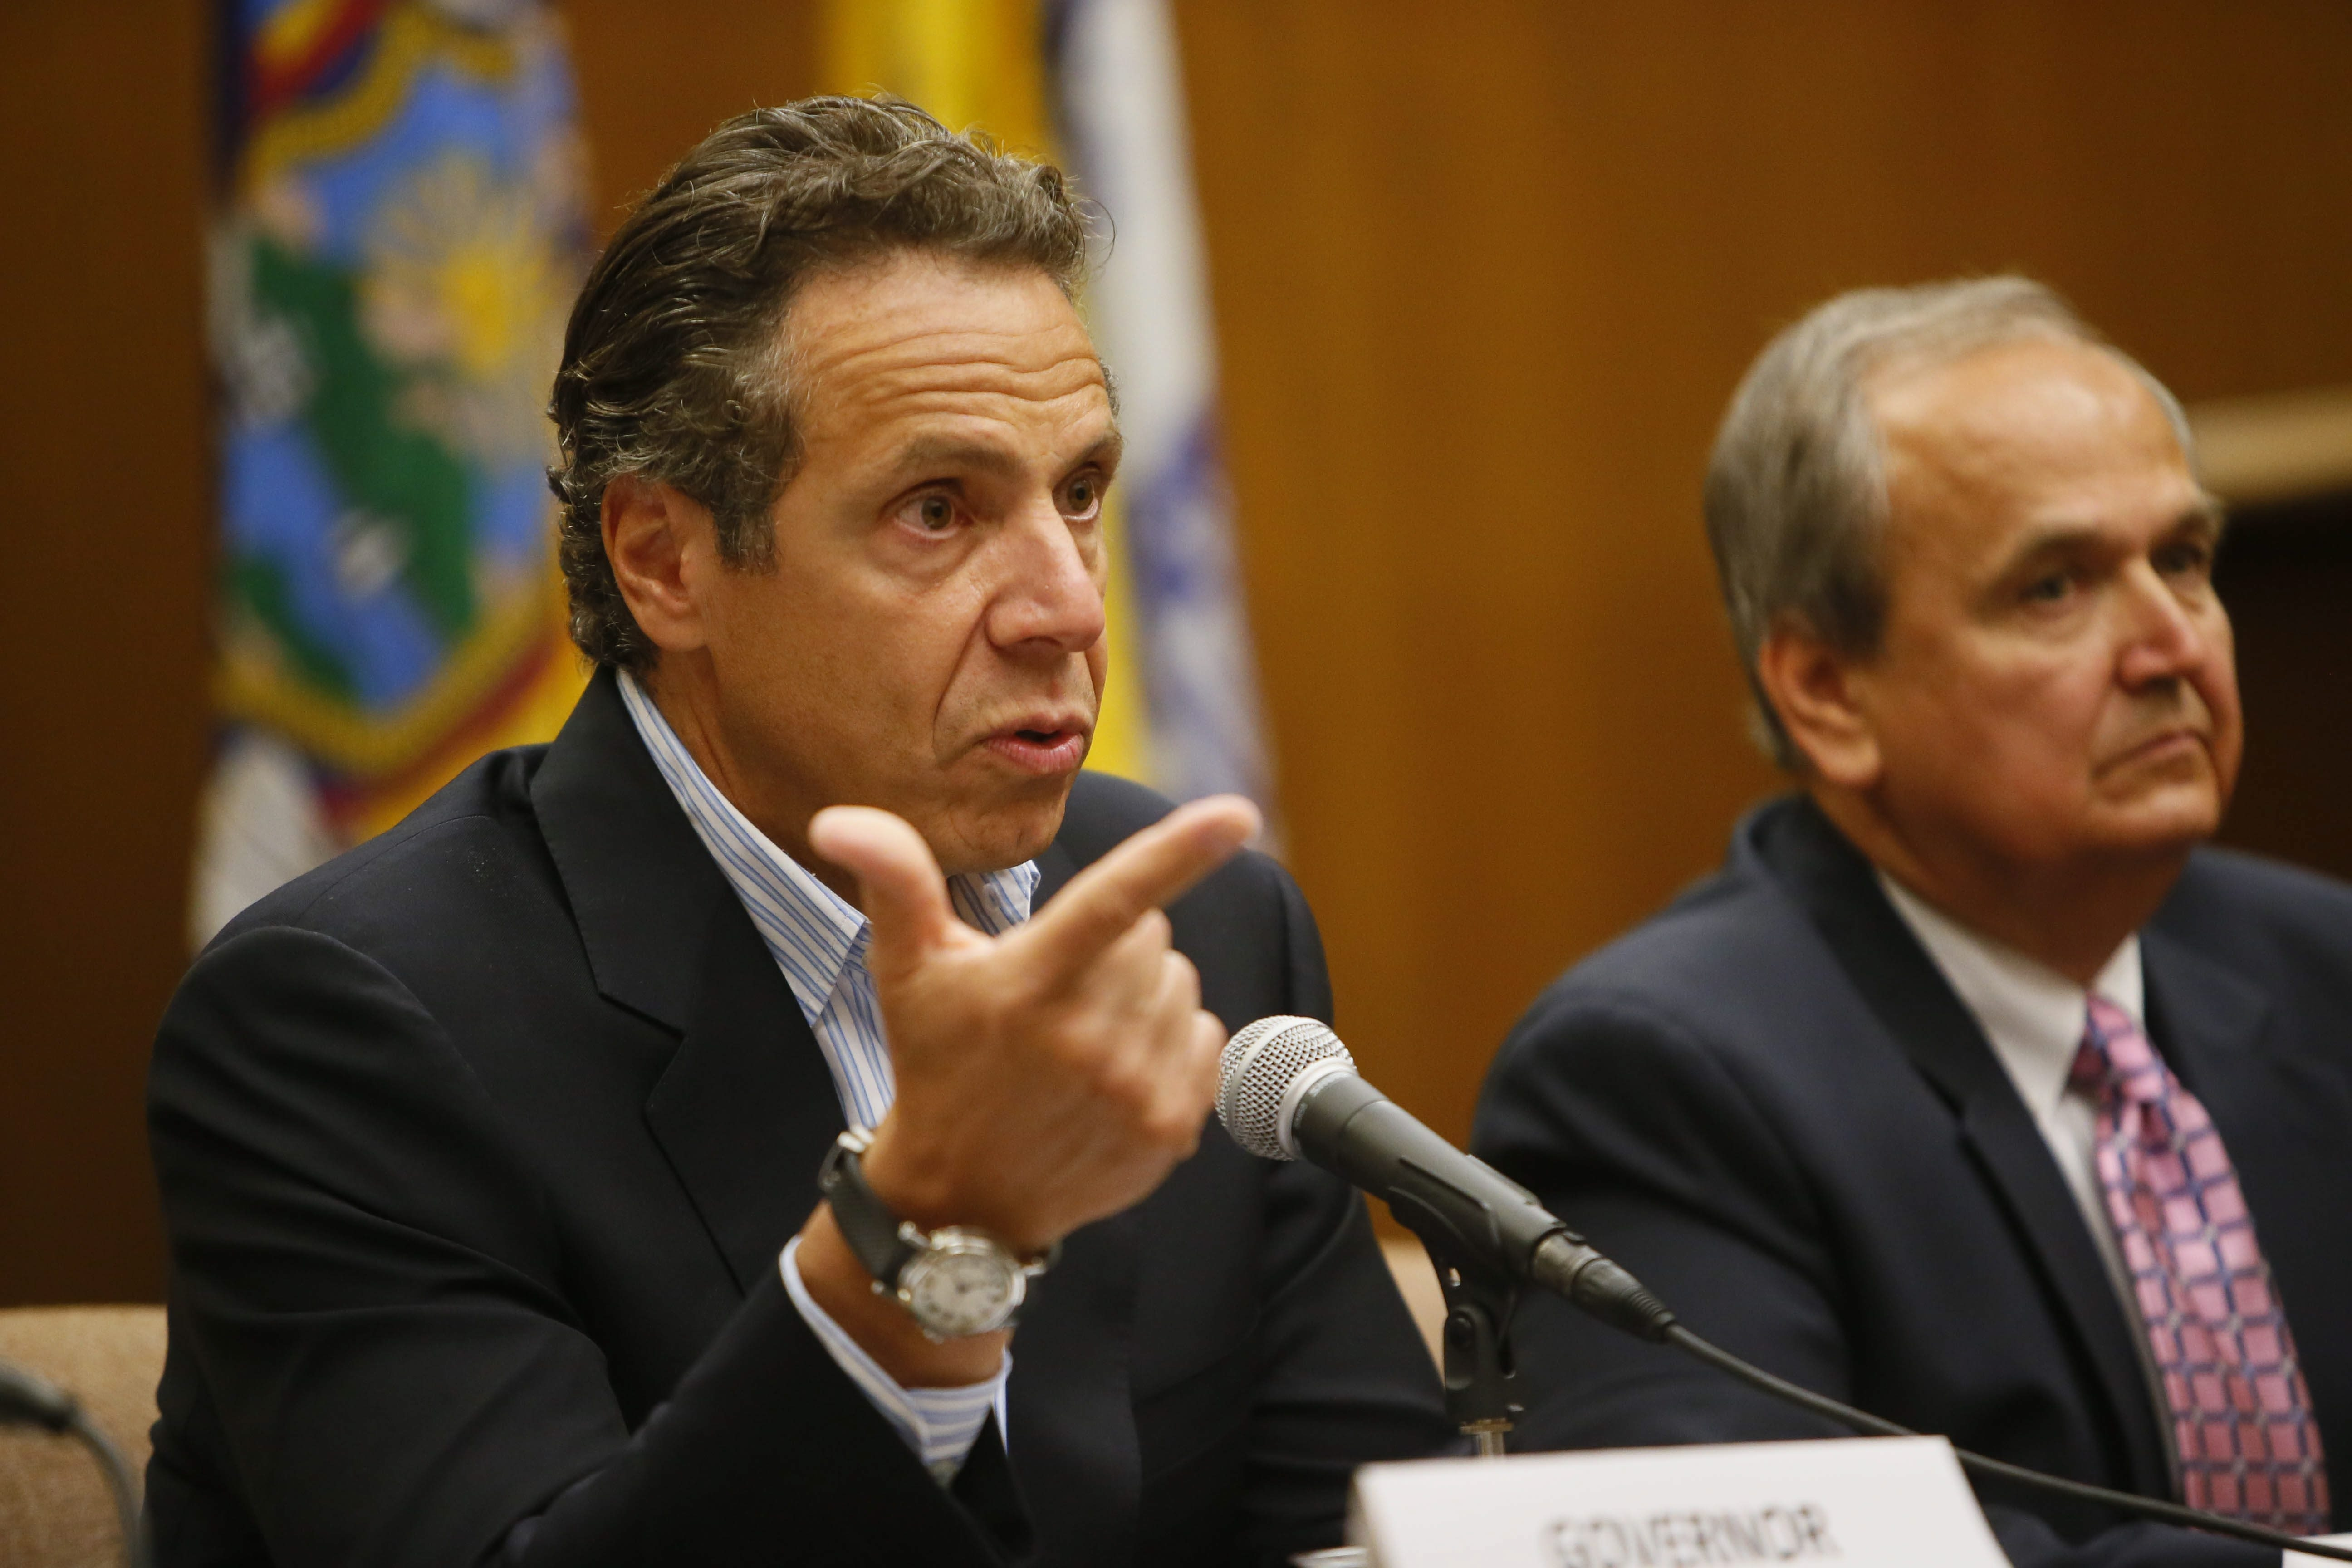 Gov. Andrew M. Cuomo, left, with State Sen. George Maziarz at Lockport City Hall, says he will pursue storm aid for Niagara Falls as he did for Lockport.